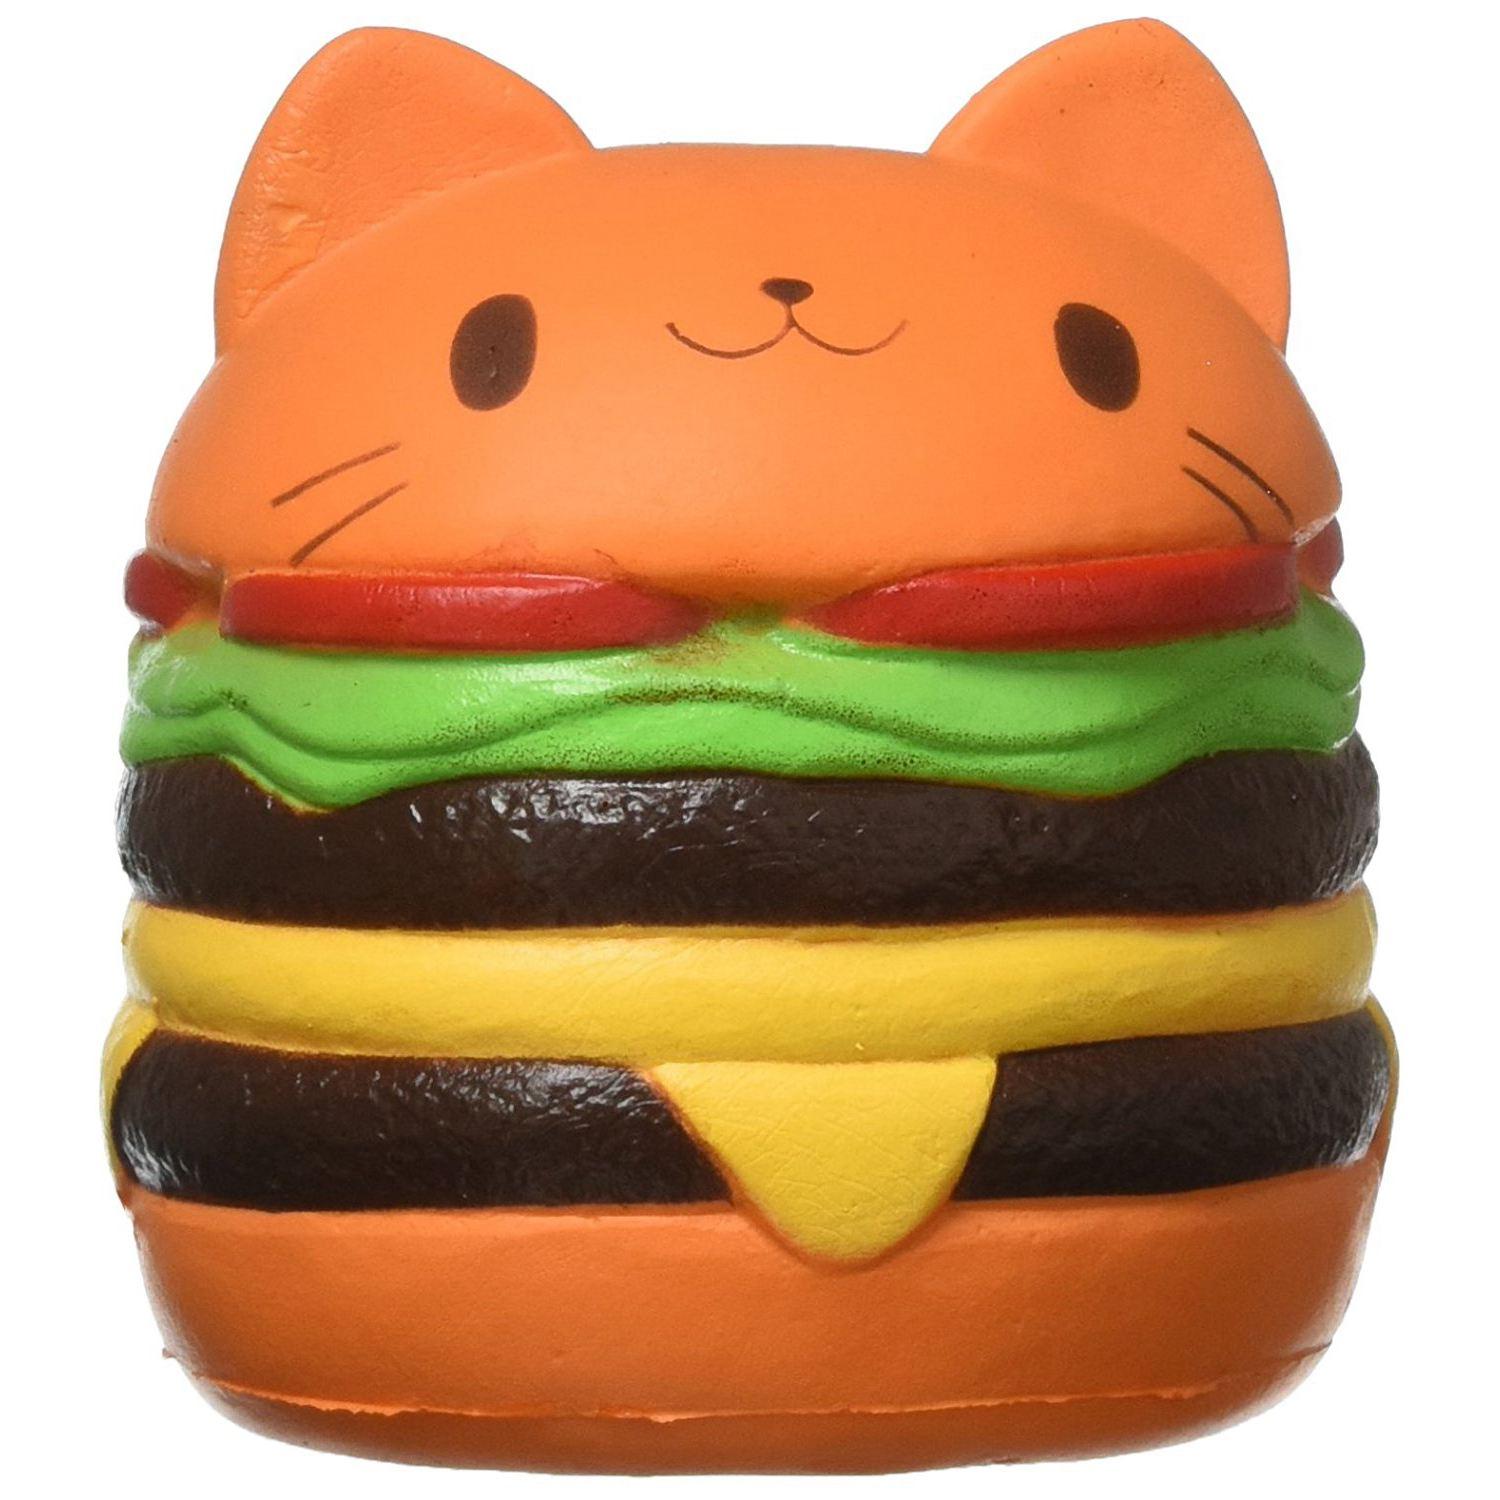 2018 New Squishy Cat Hamburger Food Squishys Cake Stress Relief toys Scented Squeeze Slow Rising Fun Toy Relieve Stress Cure G